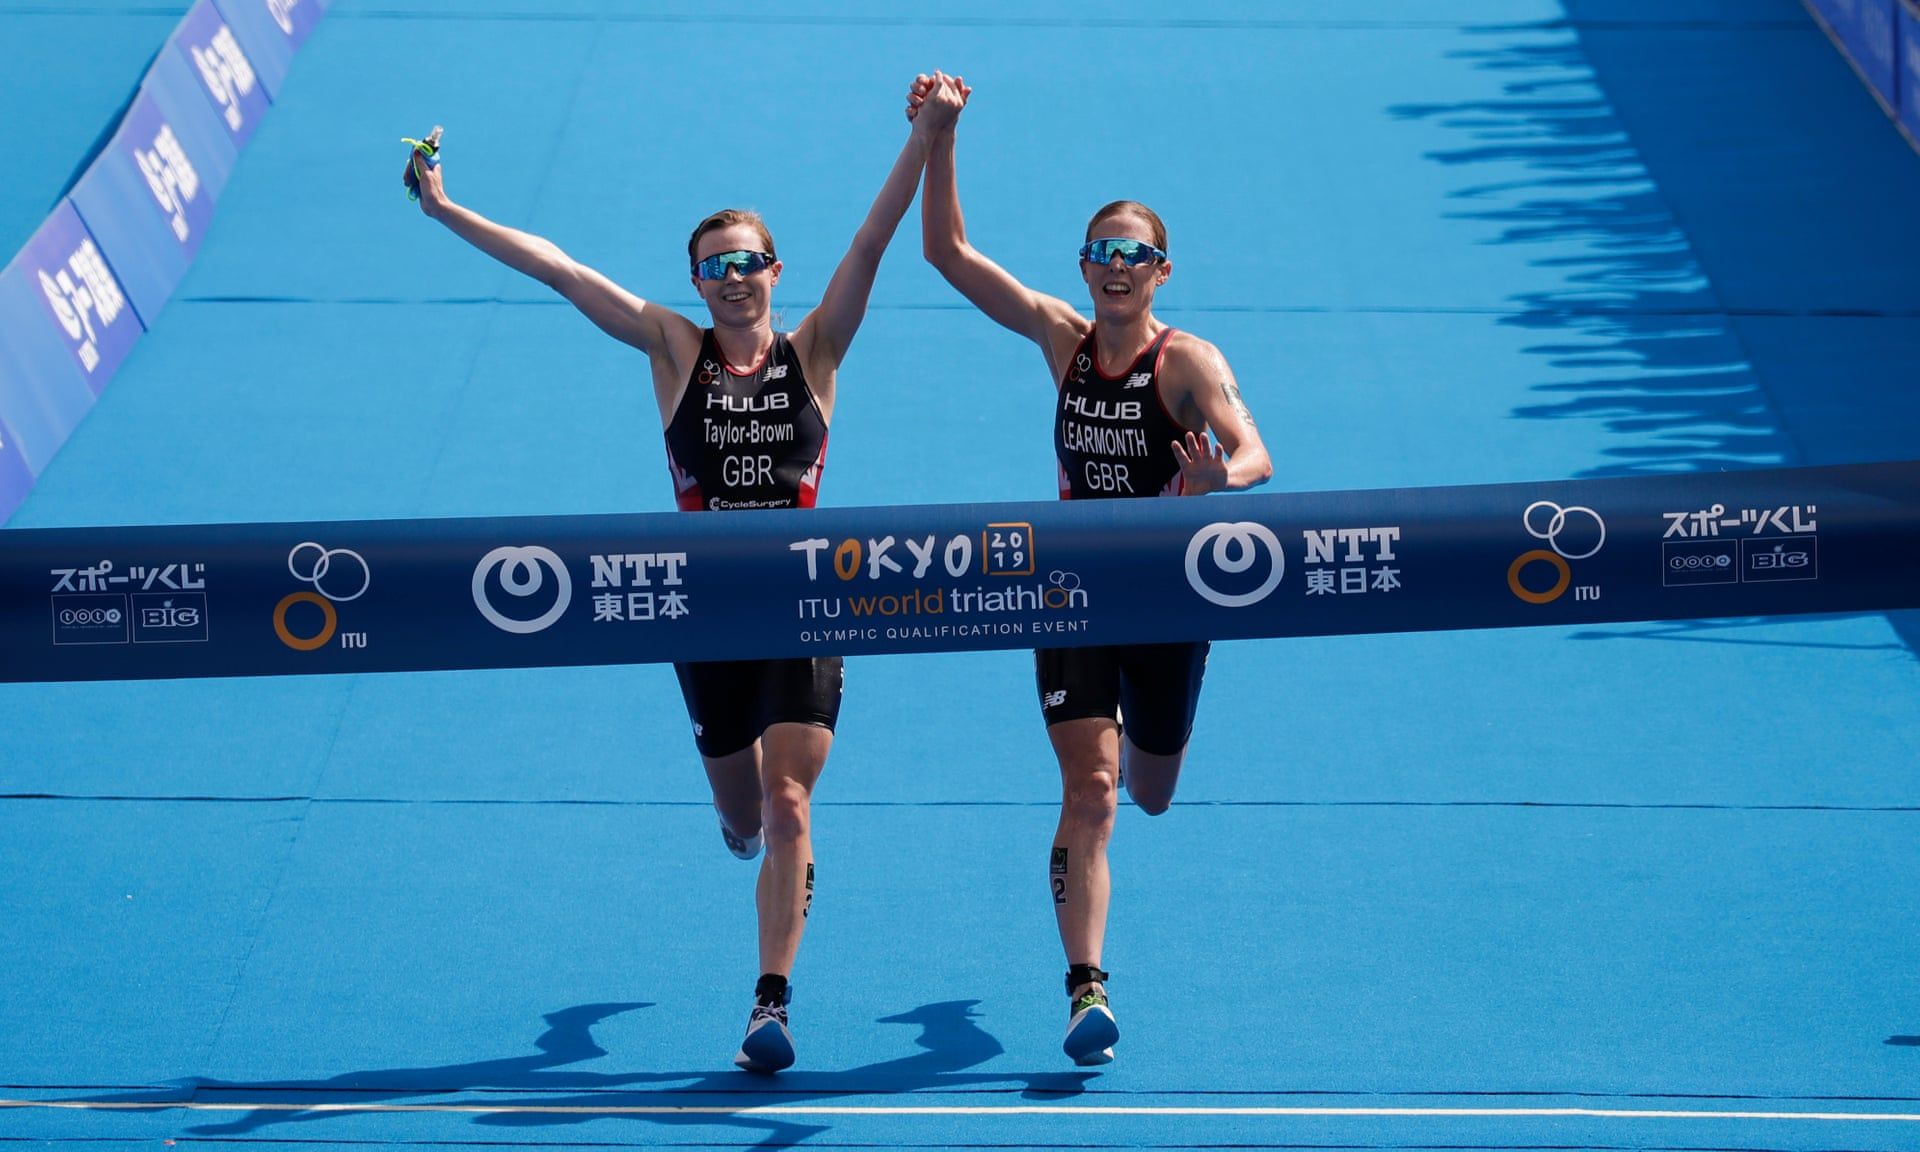 British triathletes Jess Learmonth and Georgia Taylor-Brown disqualified for holding hands as they crossed the line